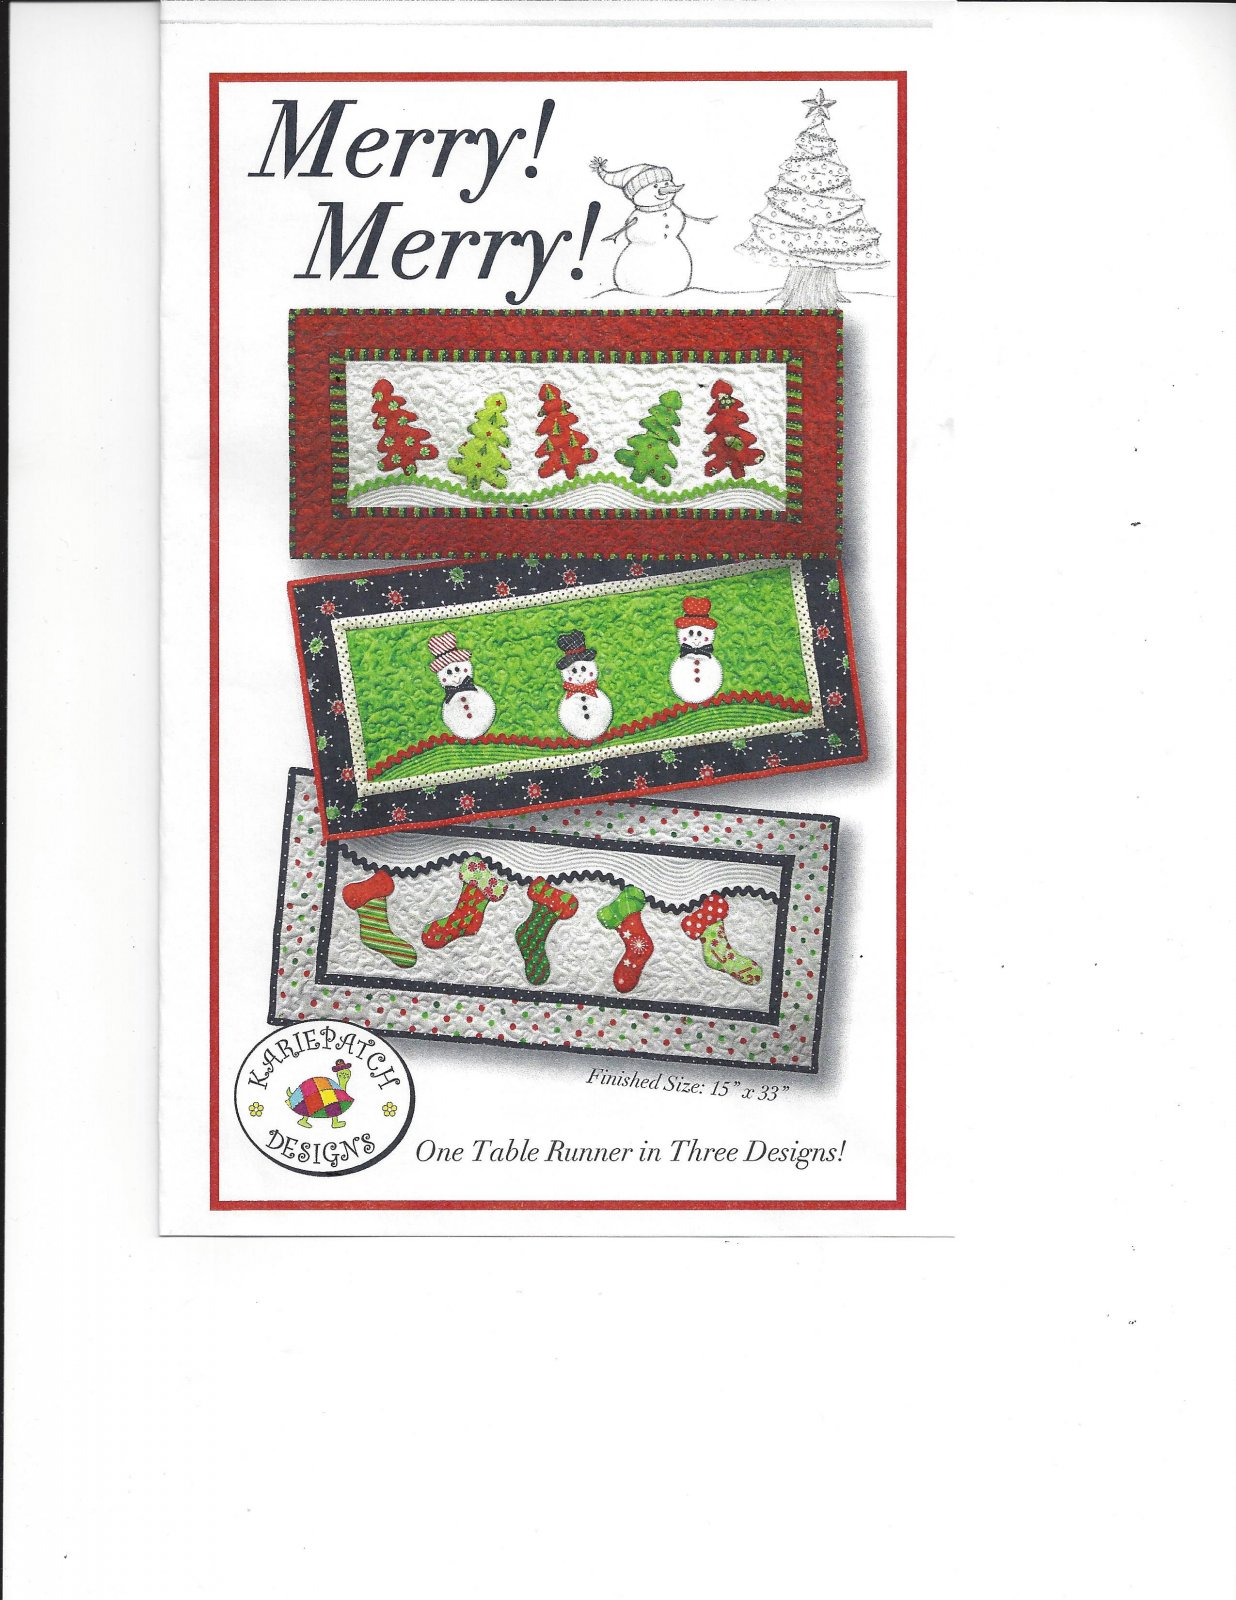 Merry! Merry! Fusible Stockings